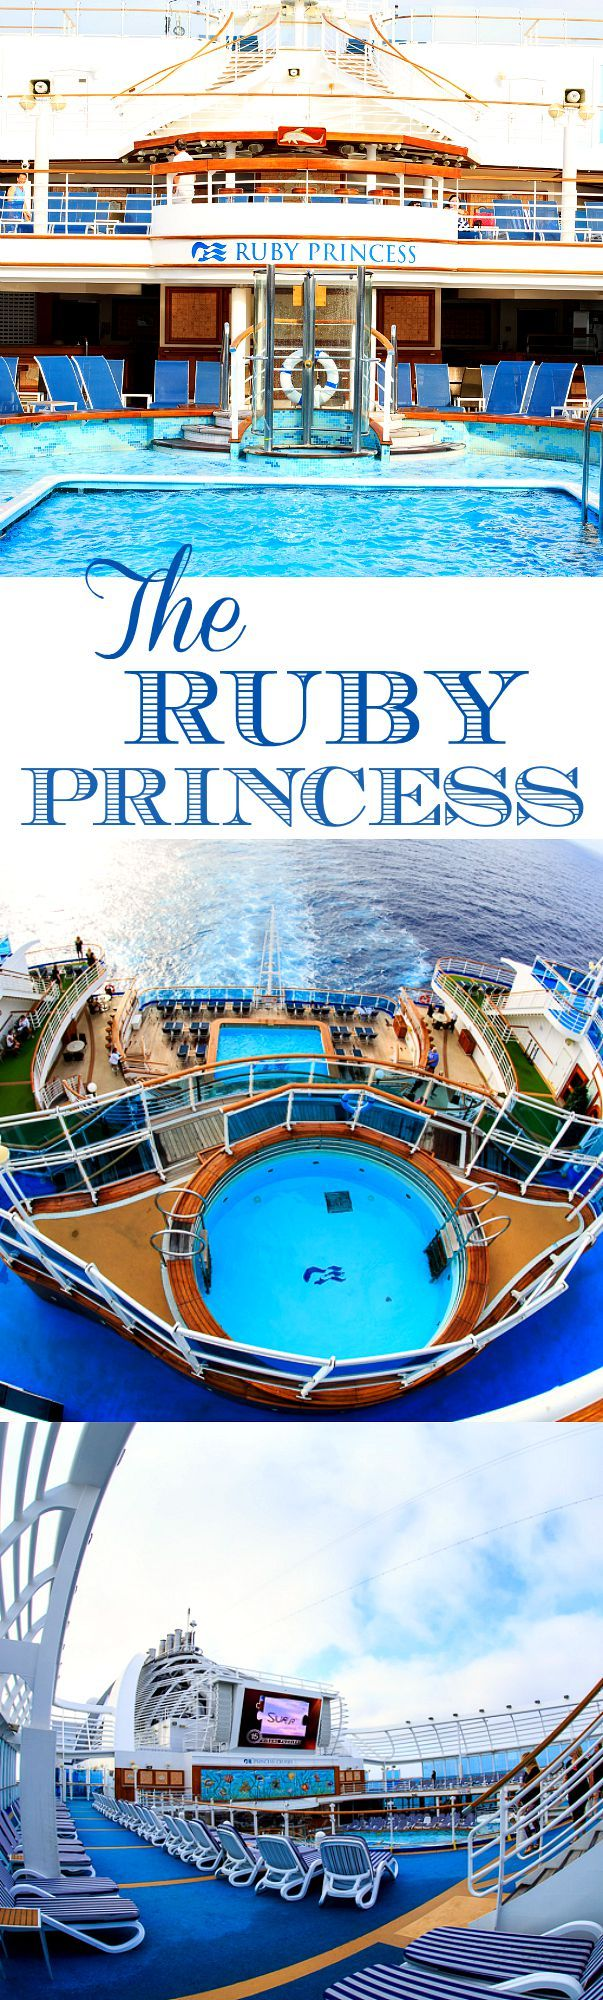 Take your dream cruise on the beautiful Ruby Princess #ad #comebacknew